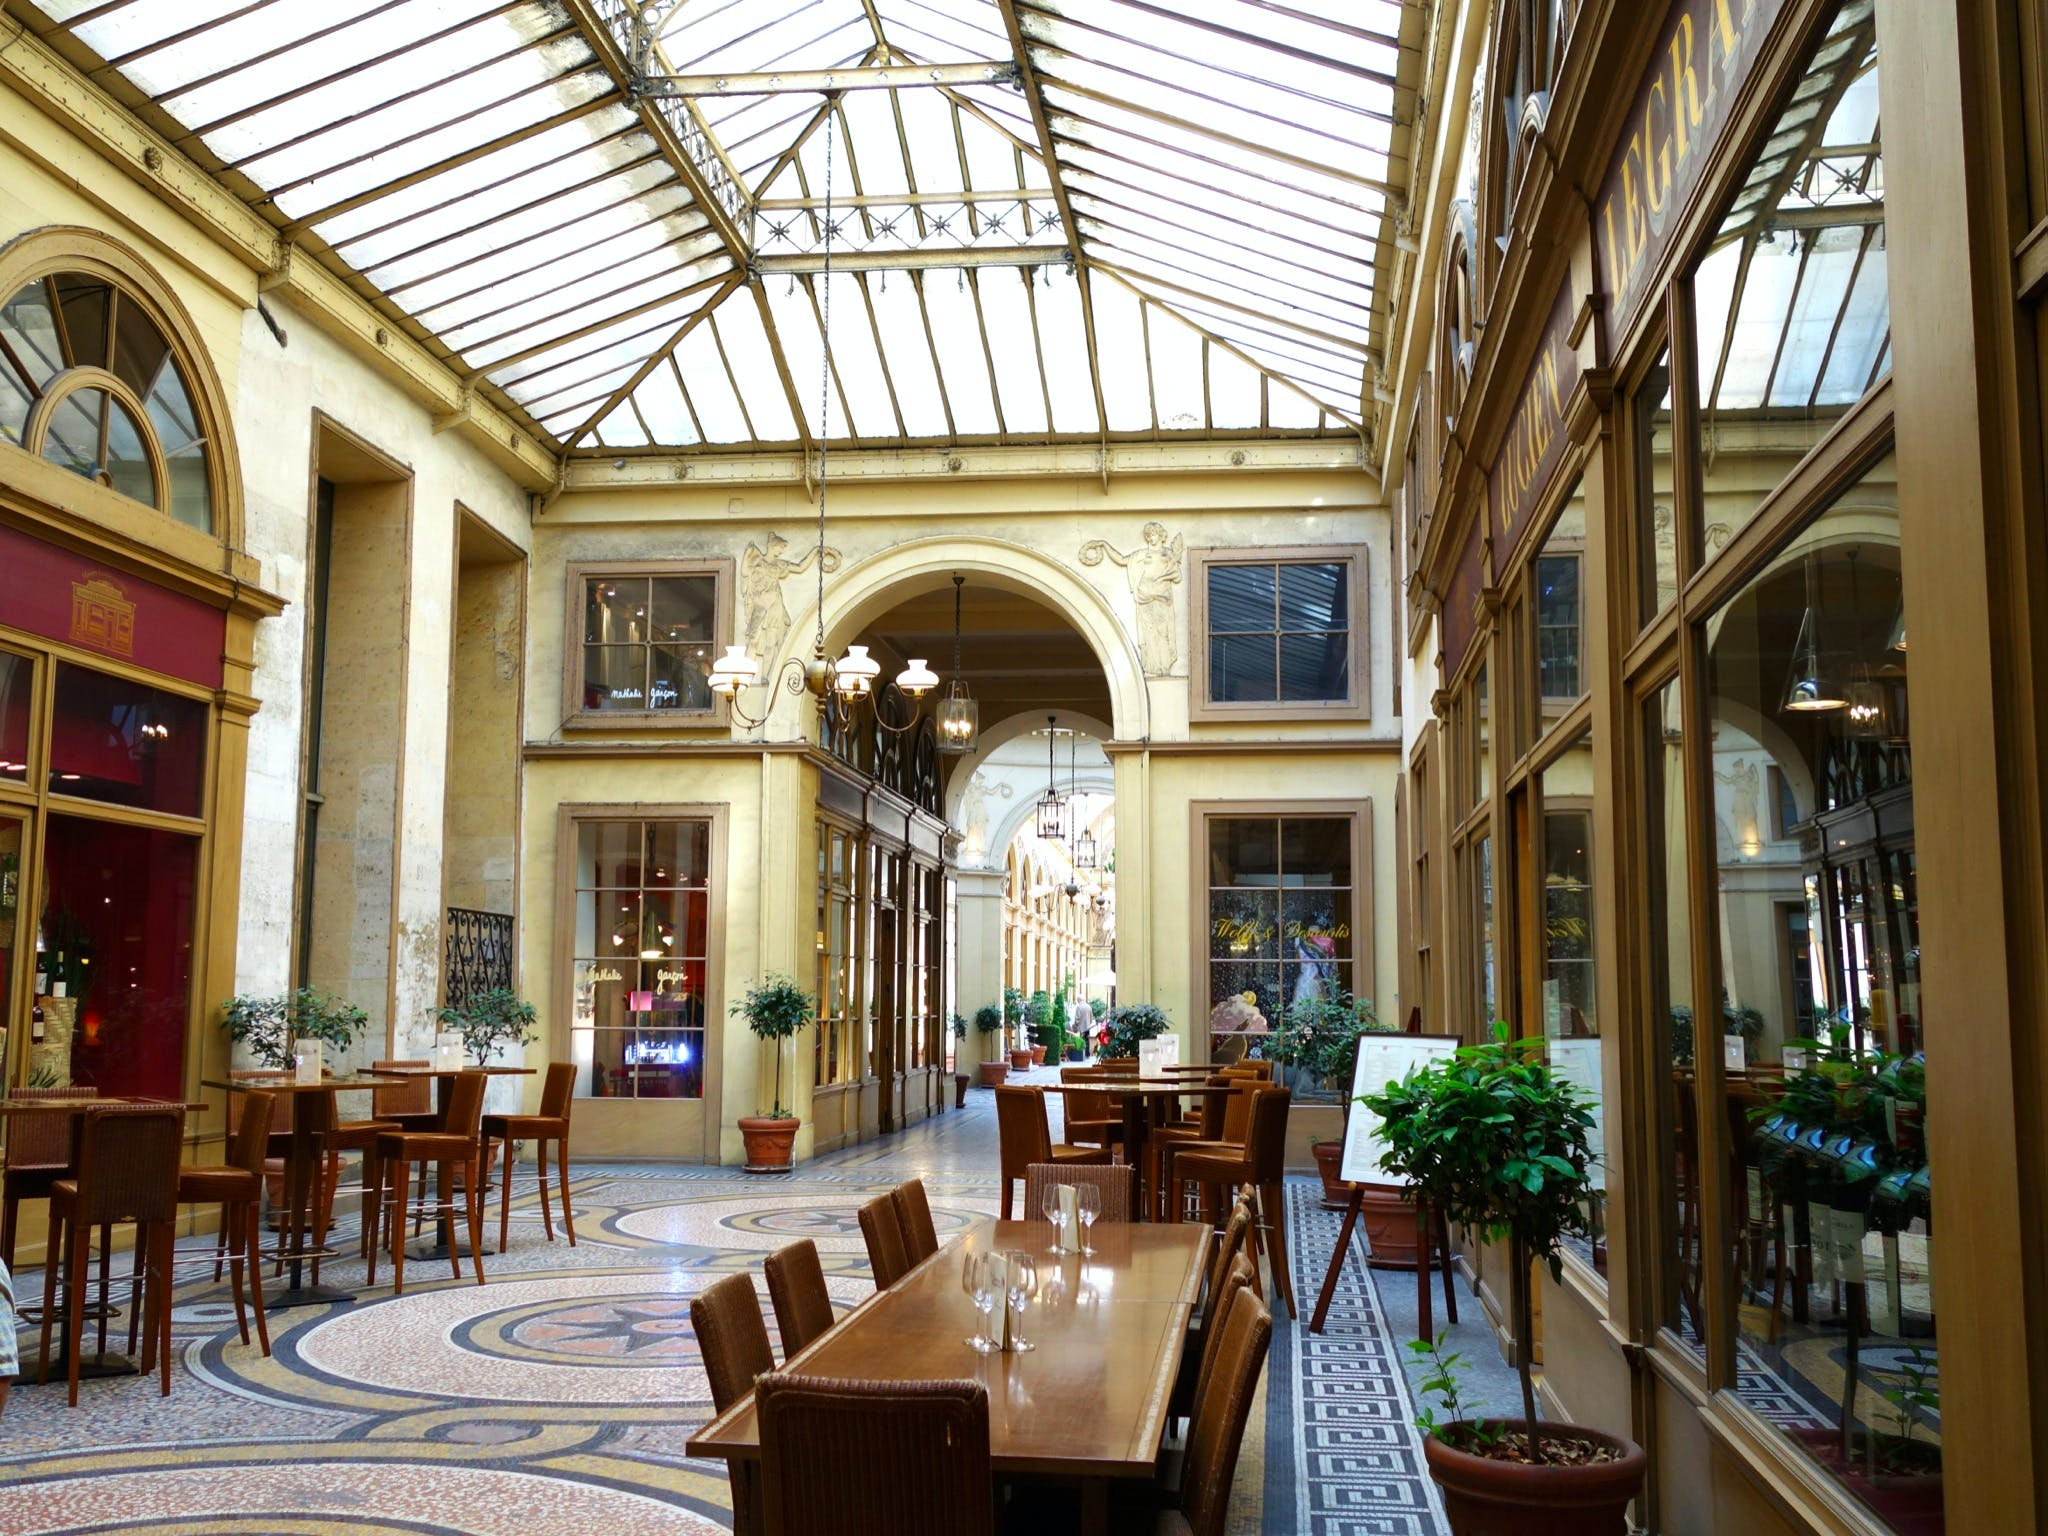 city invented, haussmann and the making of modern paris: walking tour-5